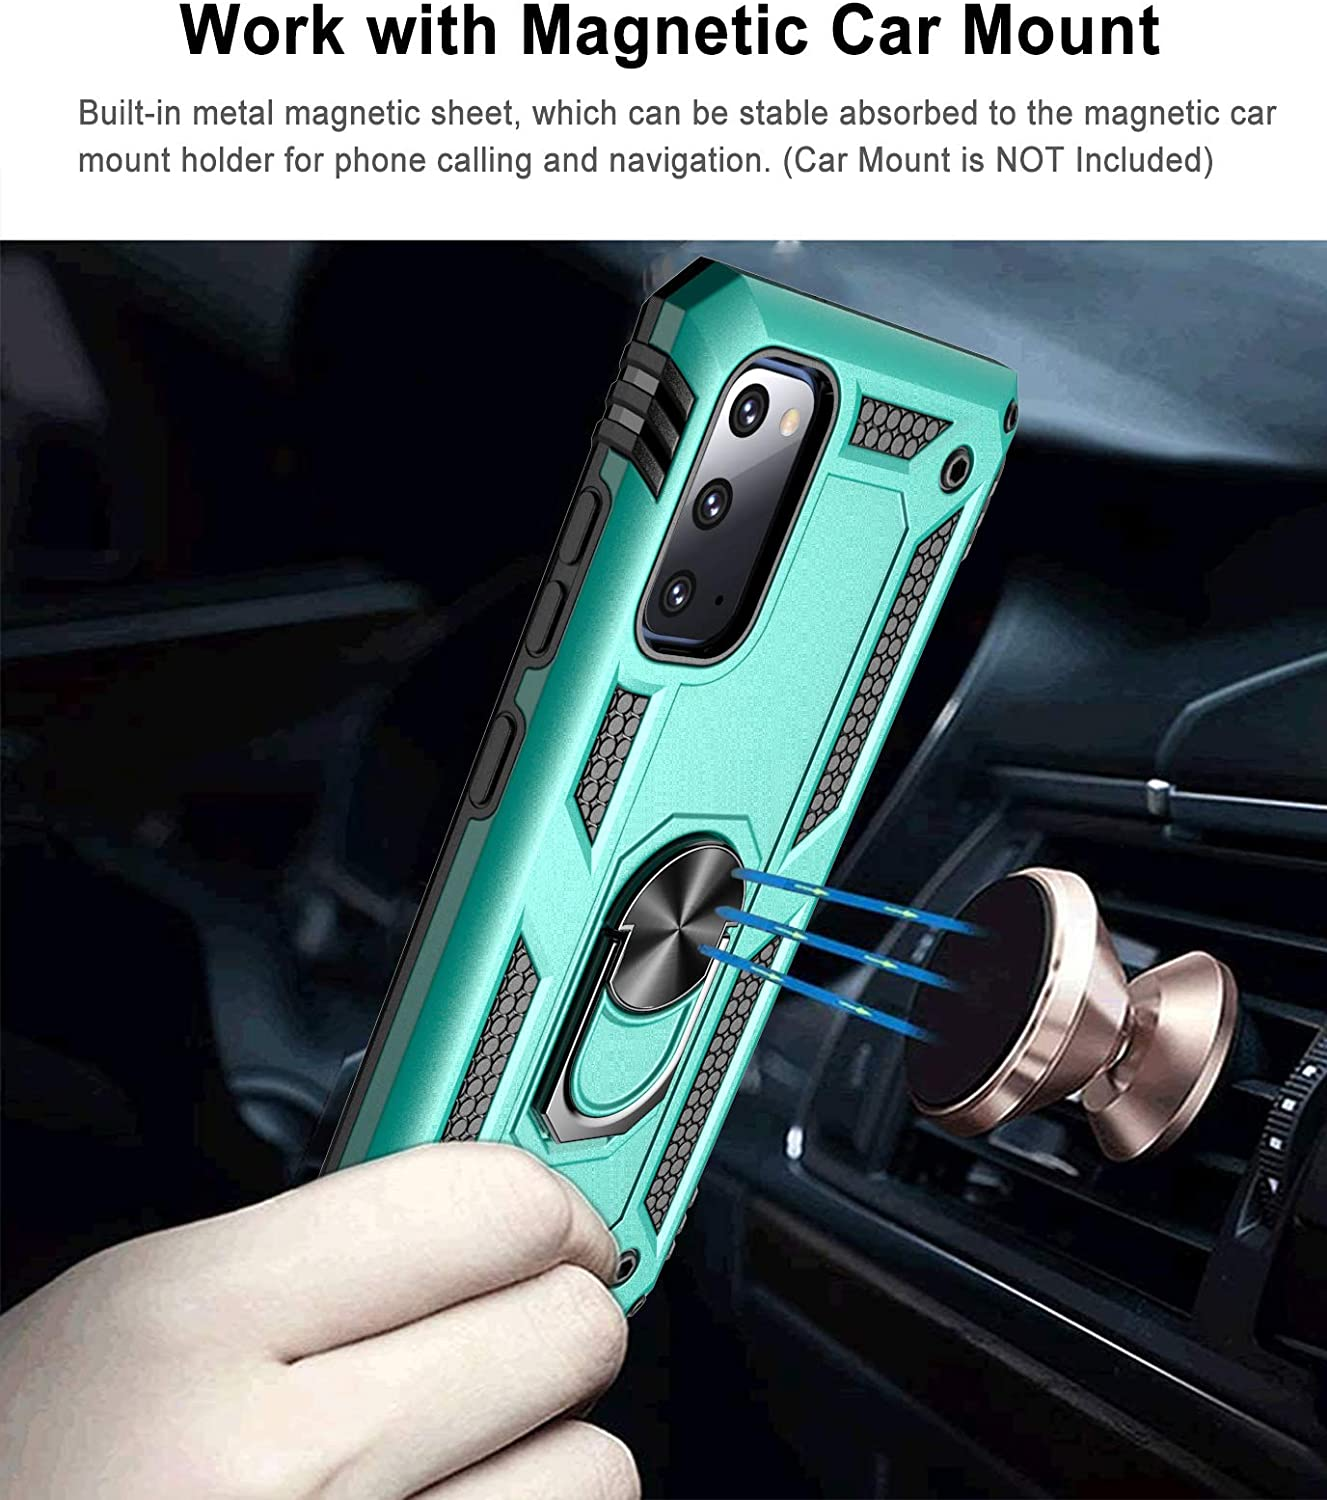 Aliruke Case for Galaxy S20 FE Case with 2 Glass Screen Protector and Align Frame,Military Grade Drop Tested Cover Grip Ring Kickstand Phone Cases for Samsung Galaxy S20 FE 5G/S20 Fan Edition, Mint